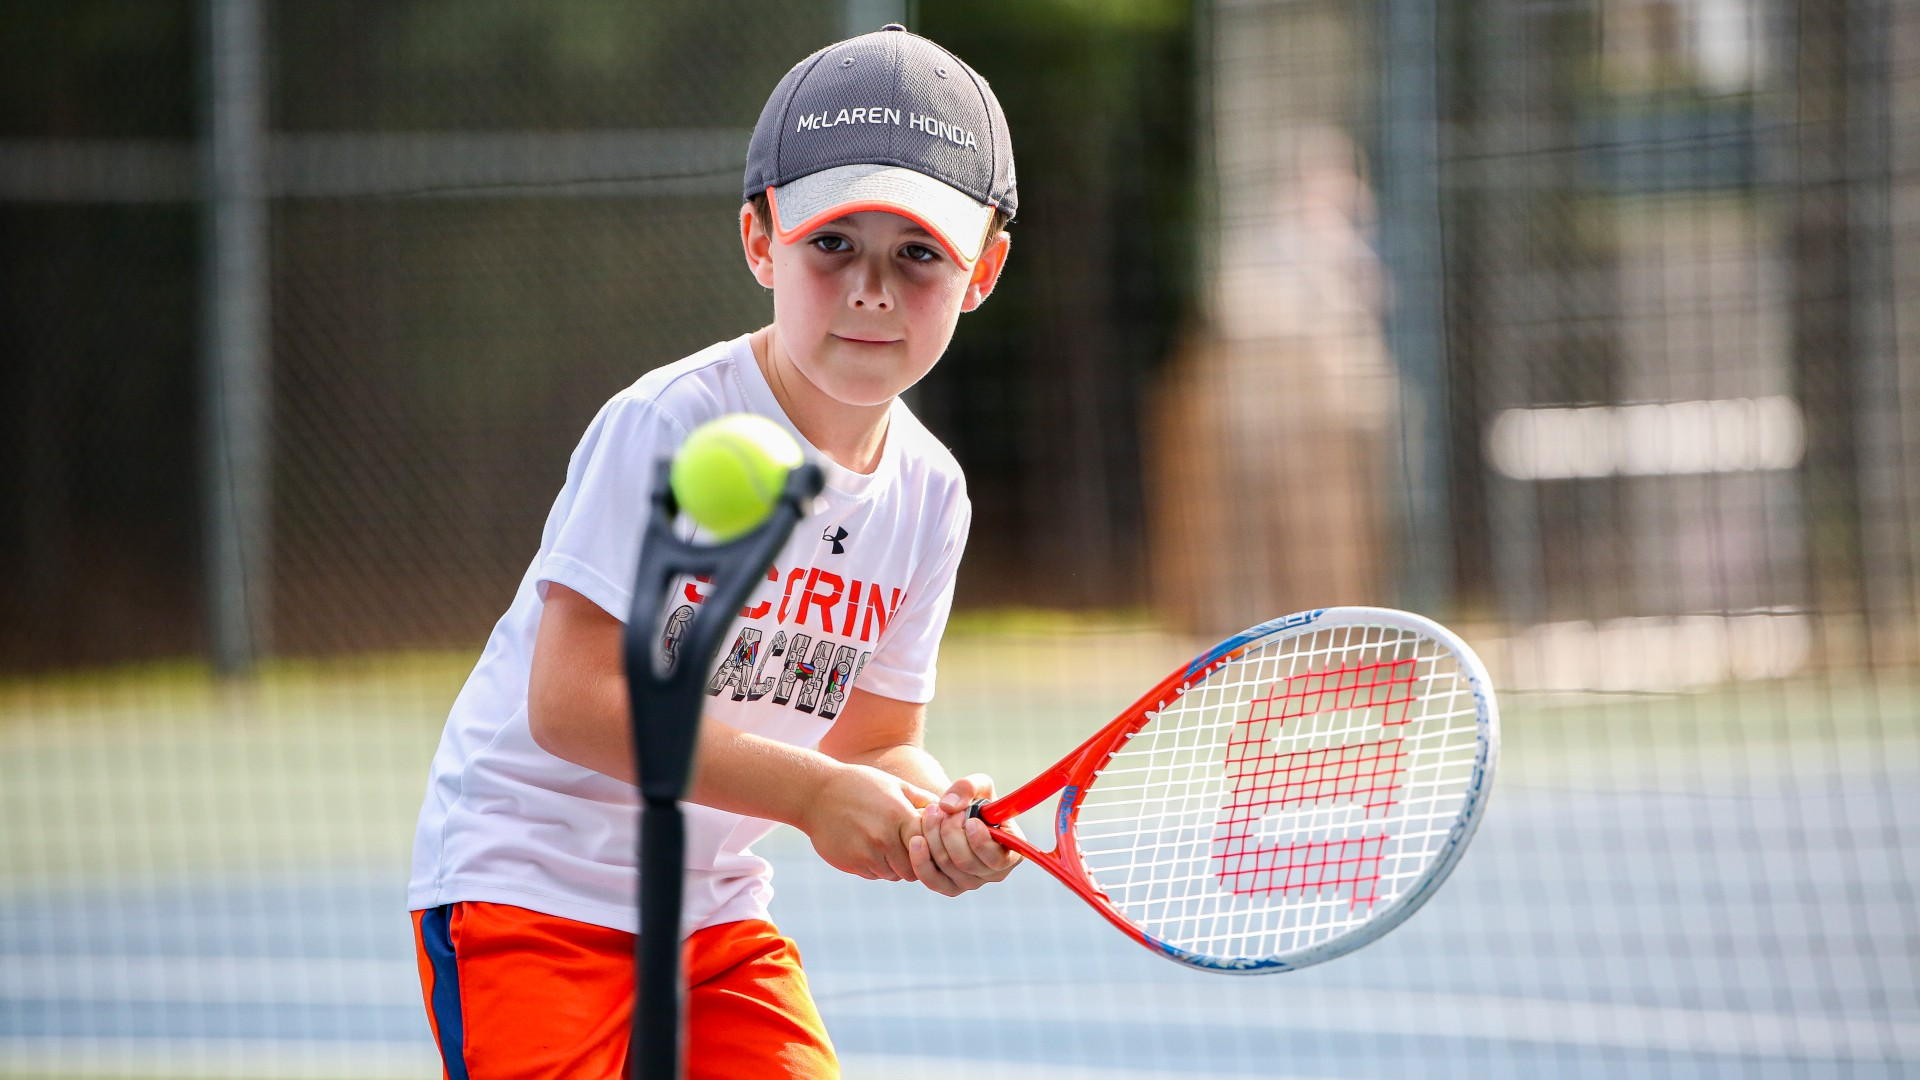 A young kid playing tennis